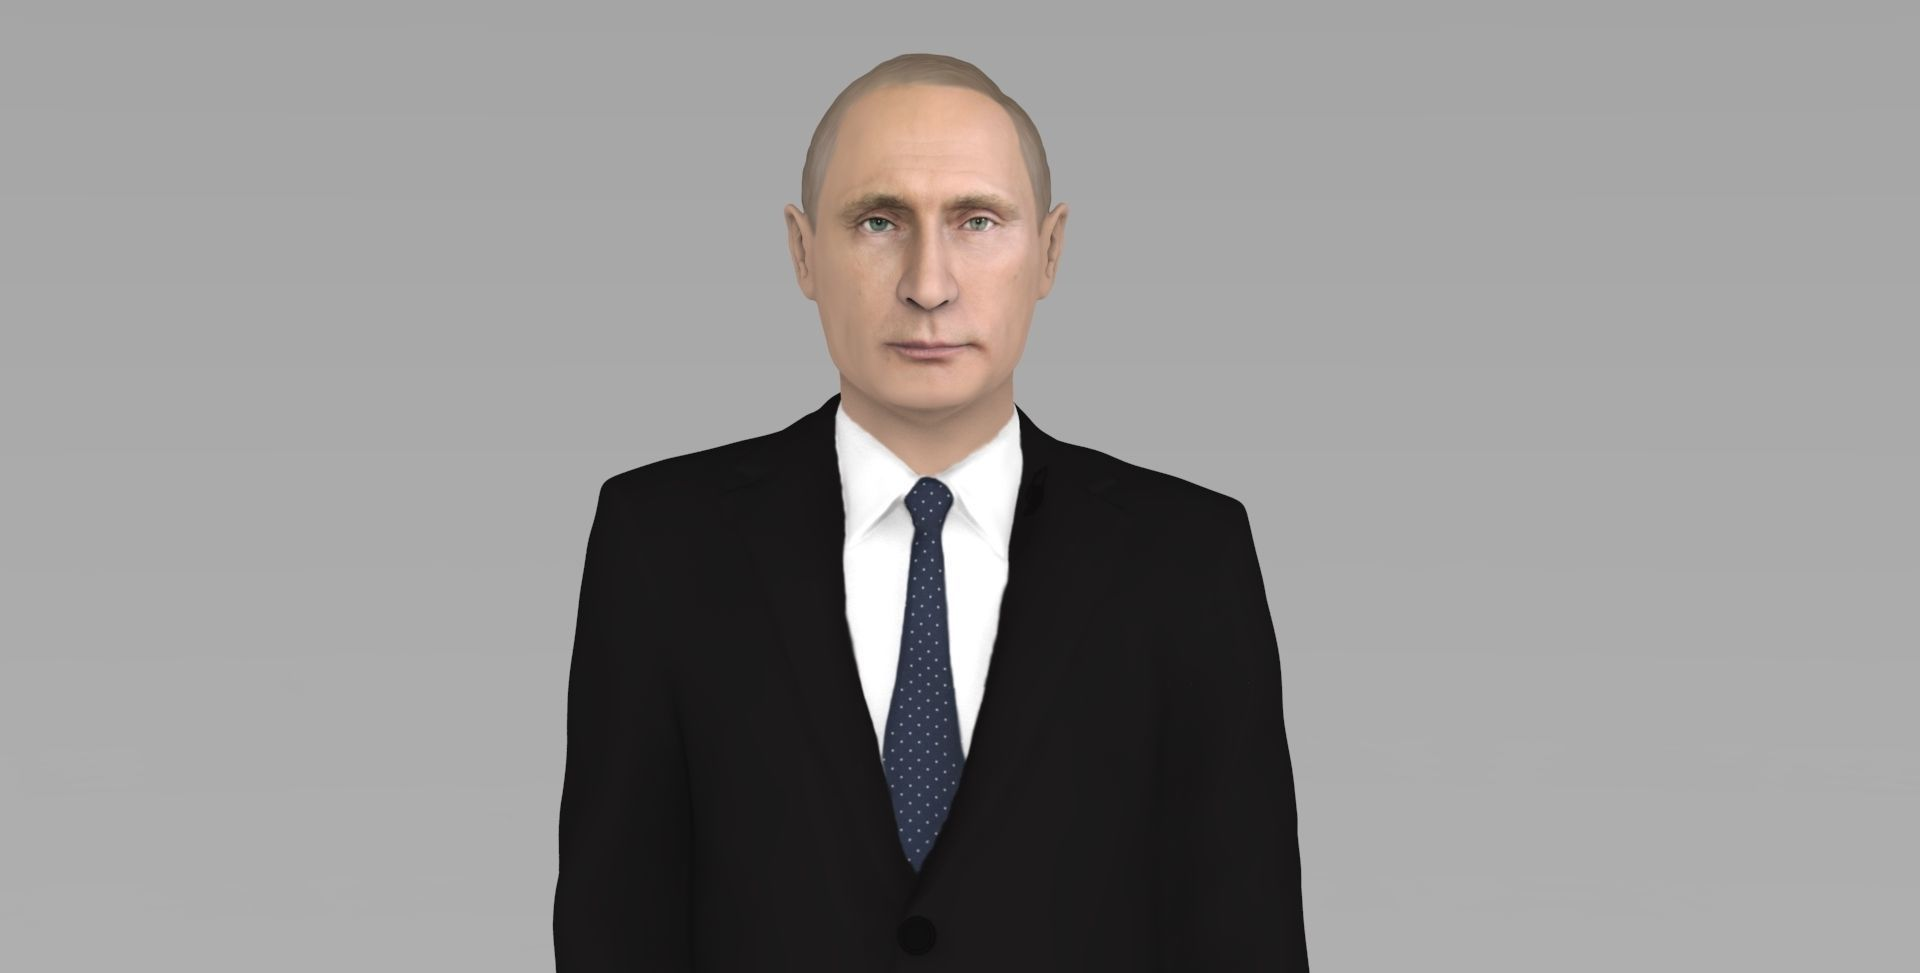 Vladimir Putin ready for full color 3D printing